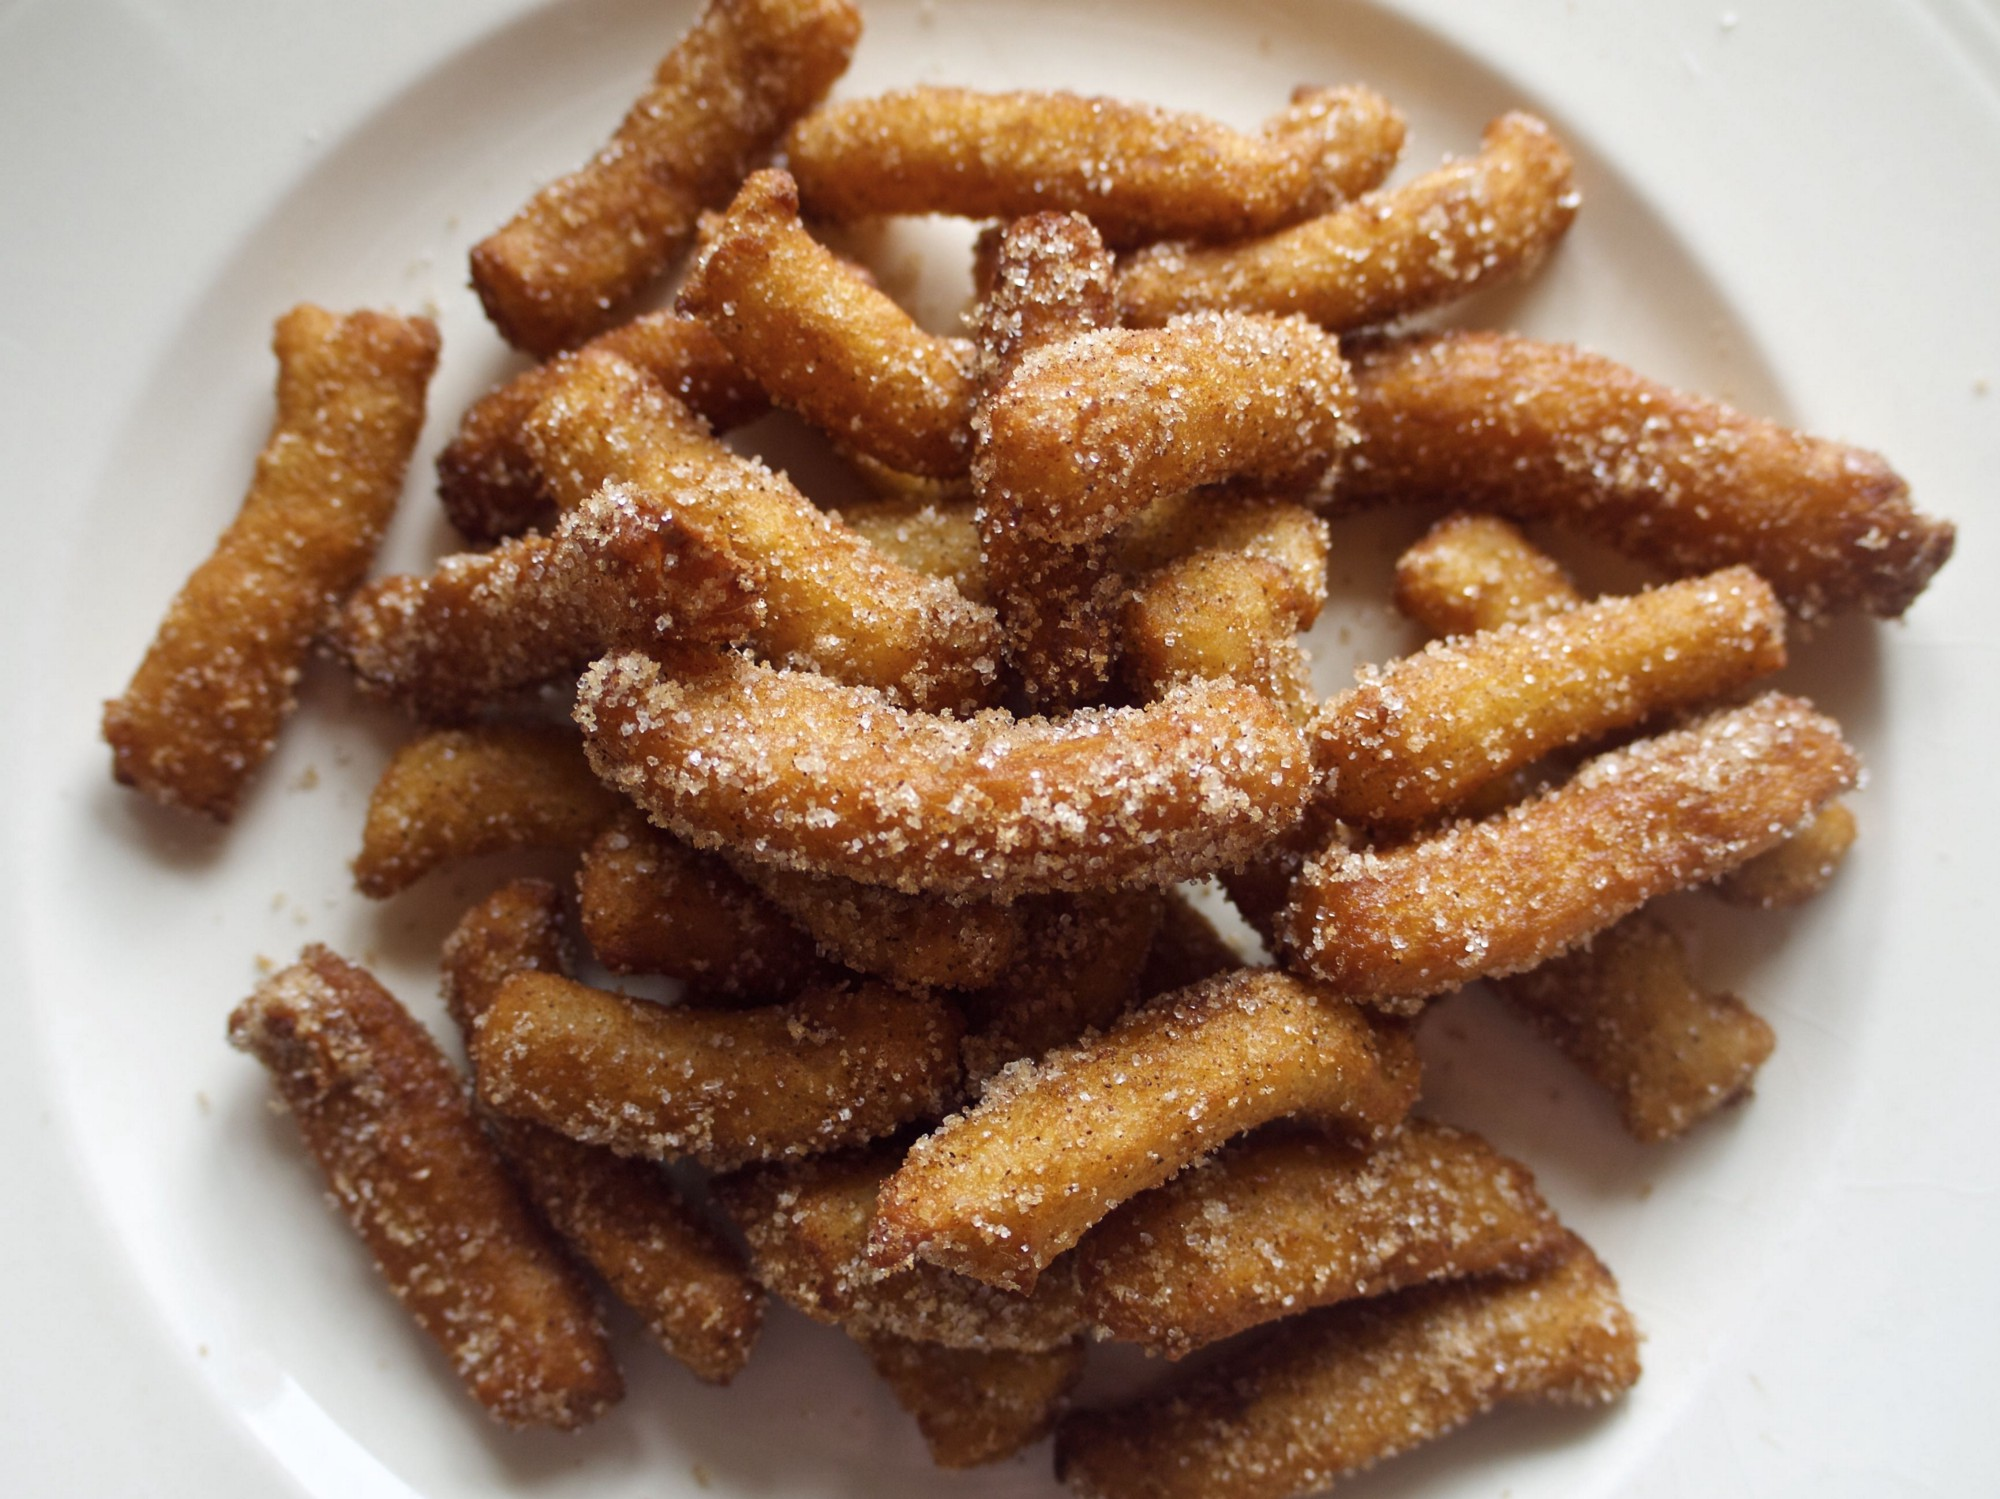 A photo of a plate piled high with homemade golden fried churros, tube-shaped dough that's dusted in sugar and cinnamon